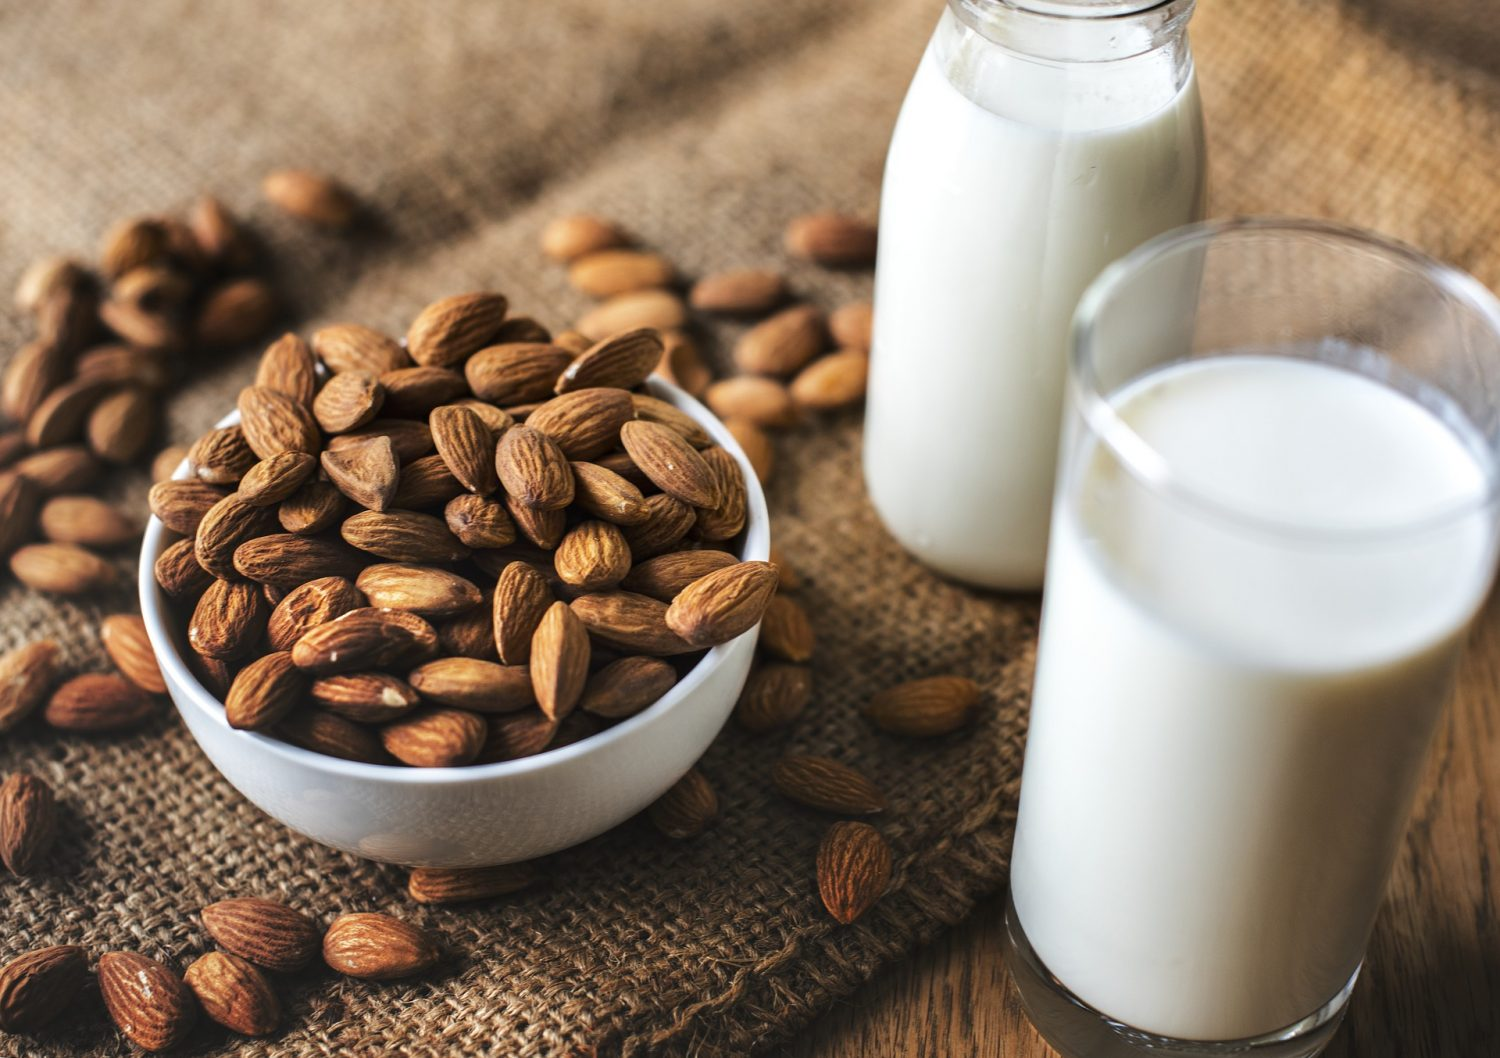 bowl of almonds next to a pitcher and a glass of almond milk